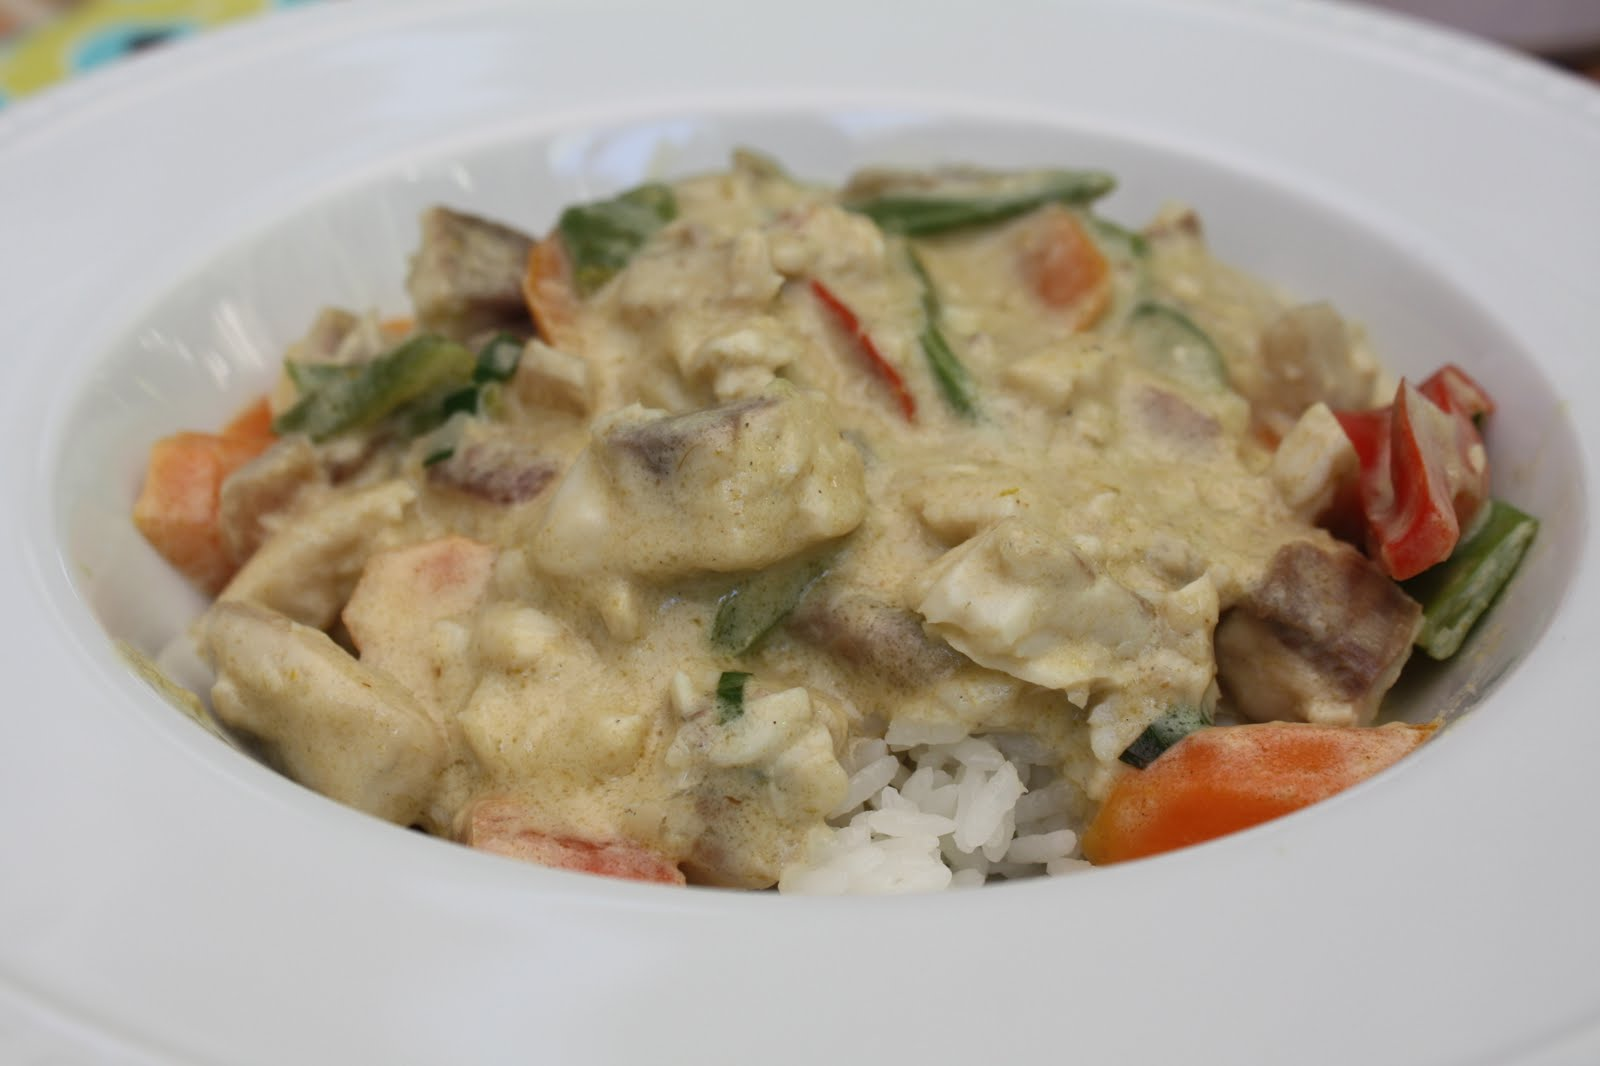 Nicole at Home: Thai green curry with tilapia